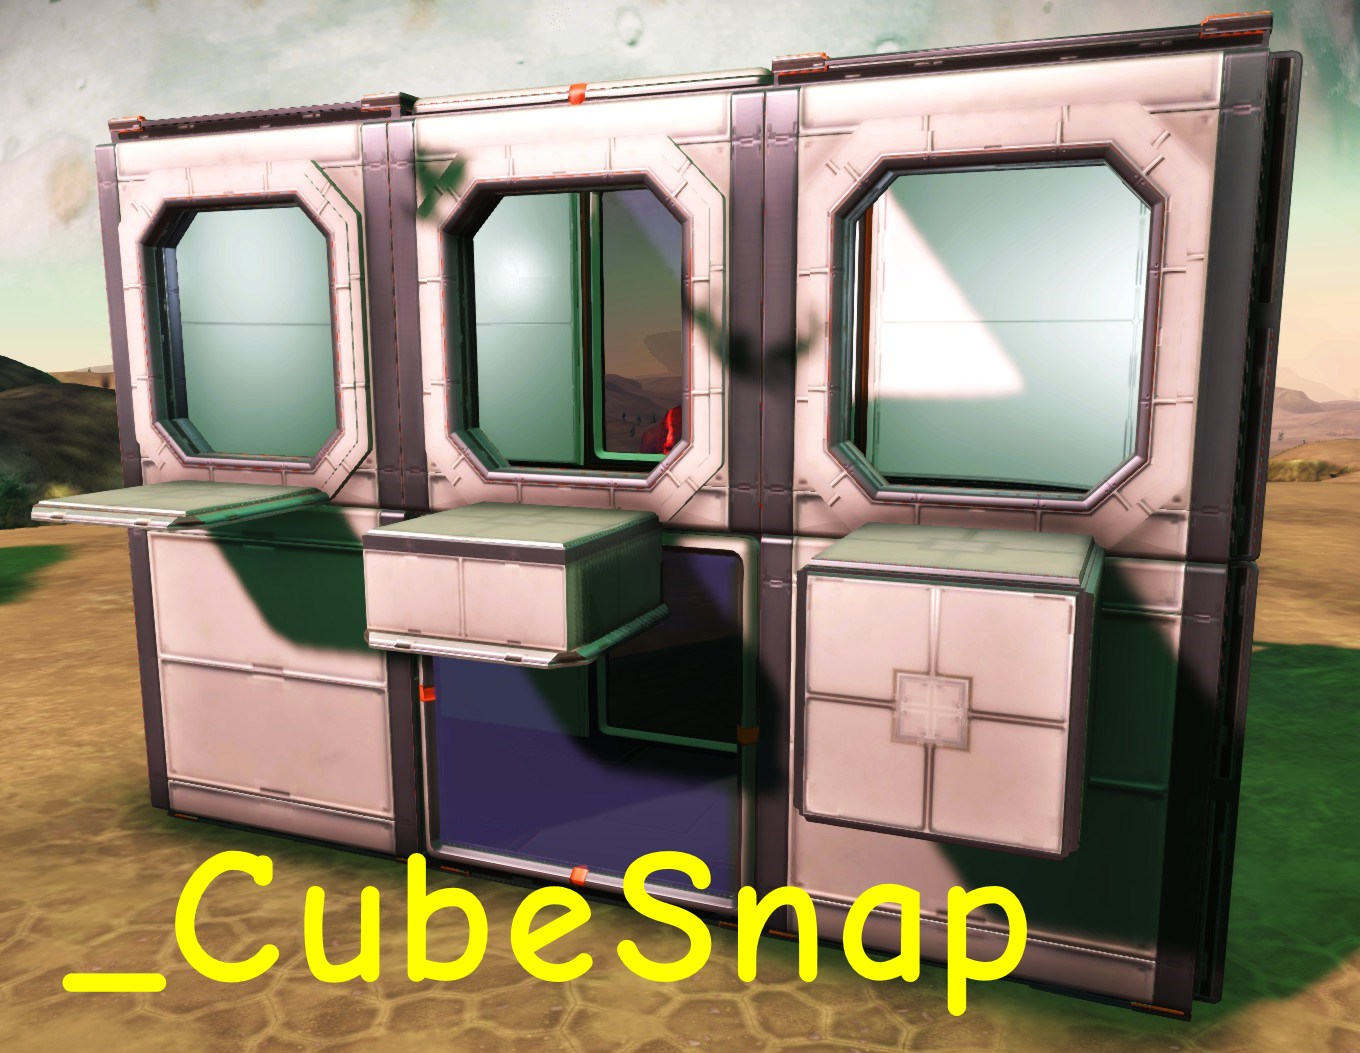 _CubeSnap – Infrastructure Floor Tiles / Cube Snapping to Cuboid Rooms